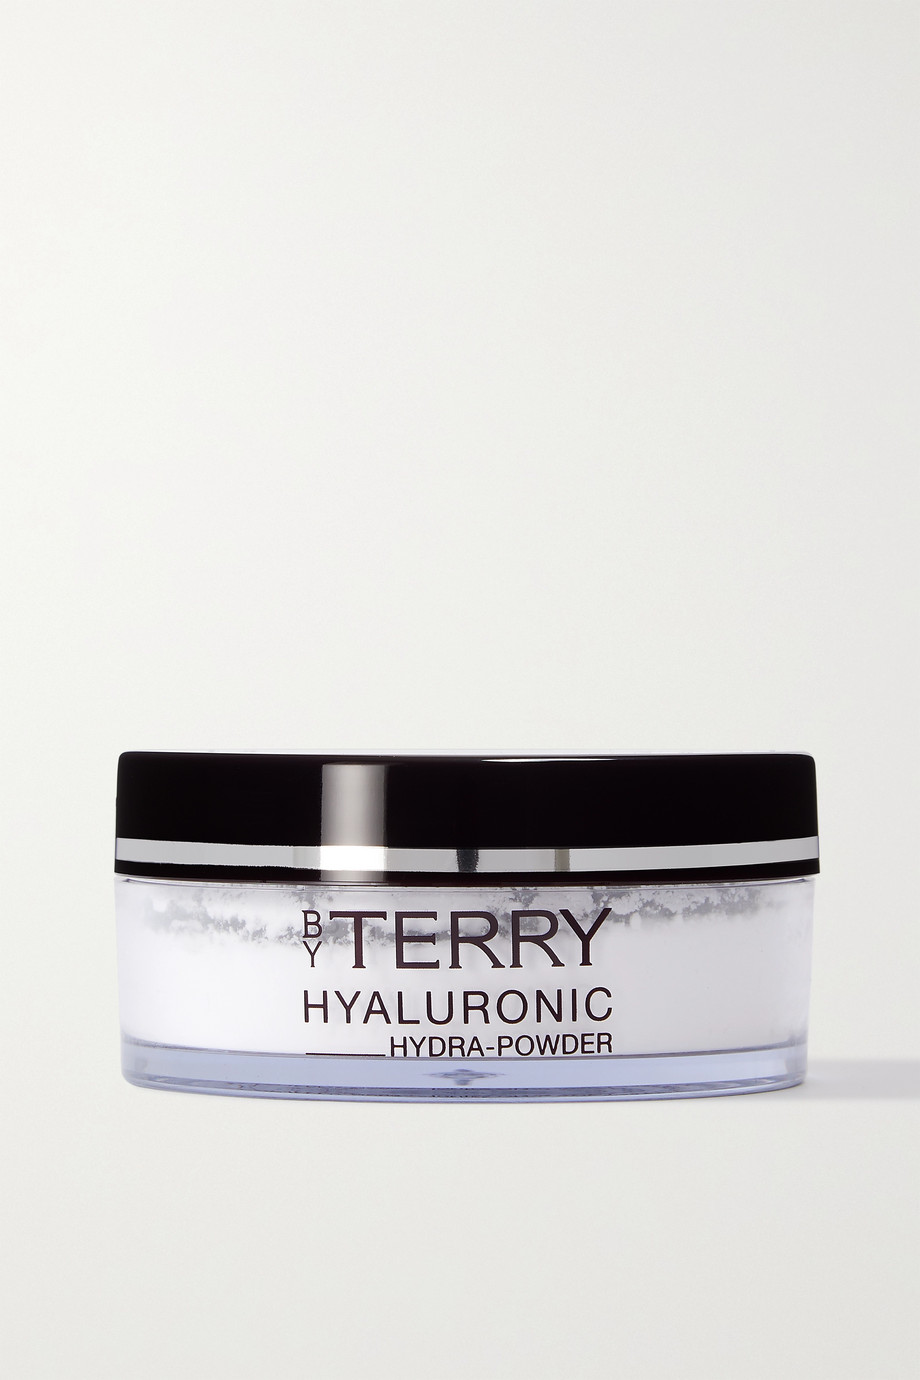 Hyaluronic Hydra-Powder, by By Terry